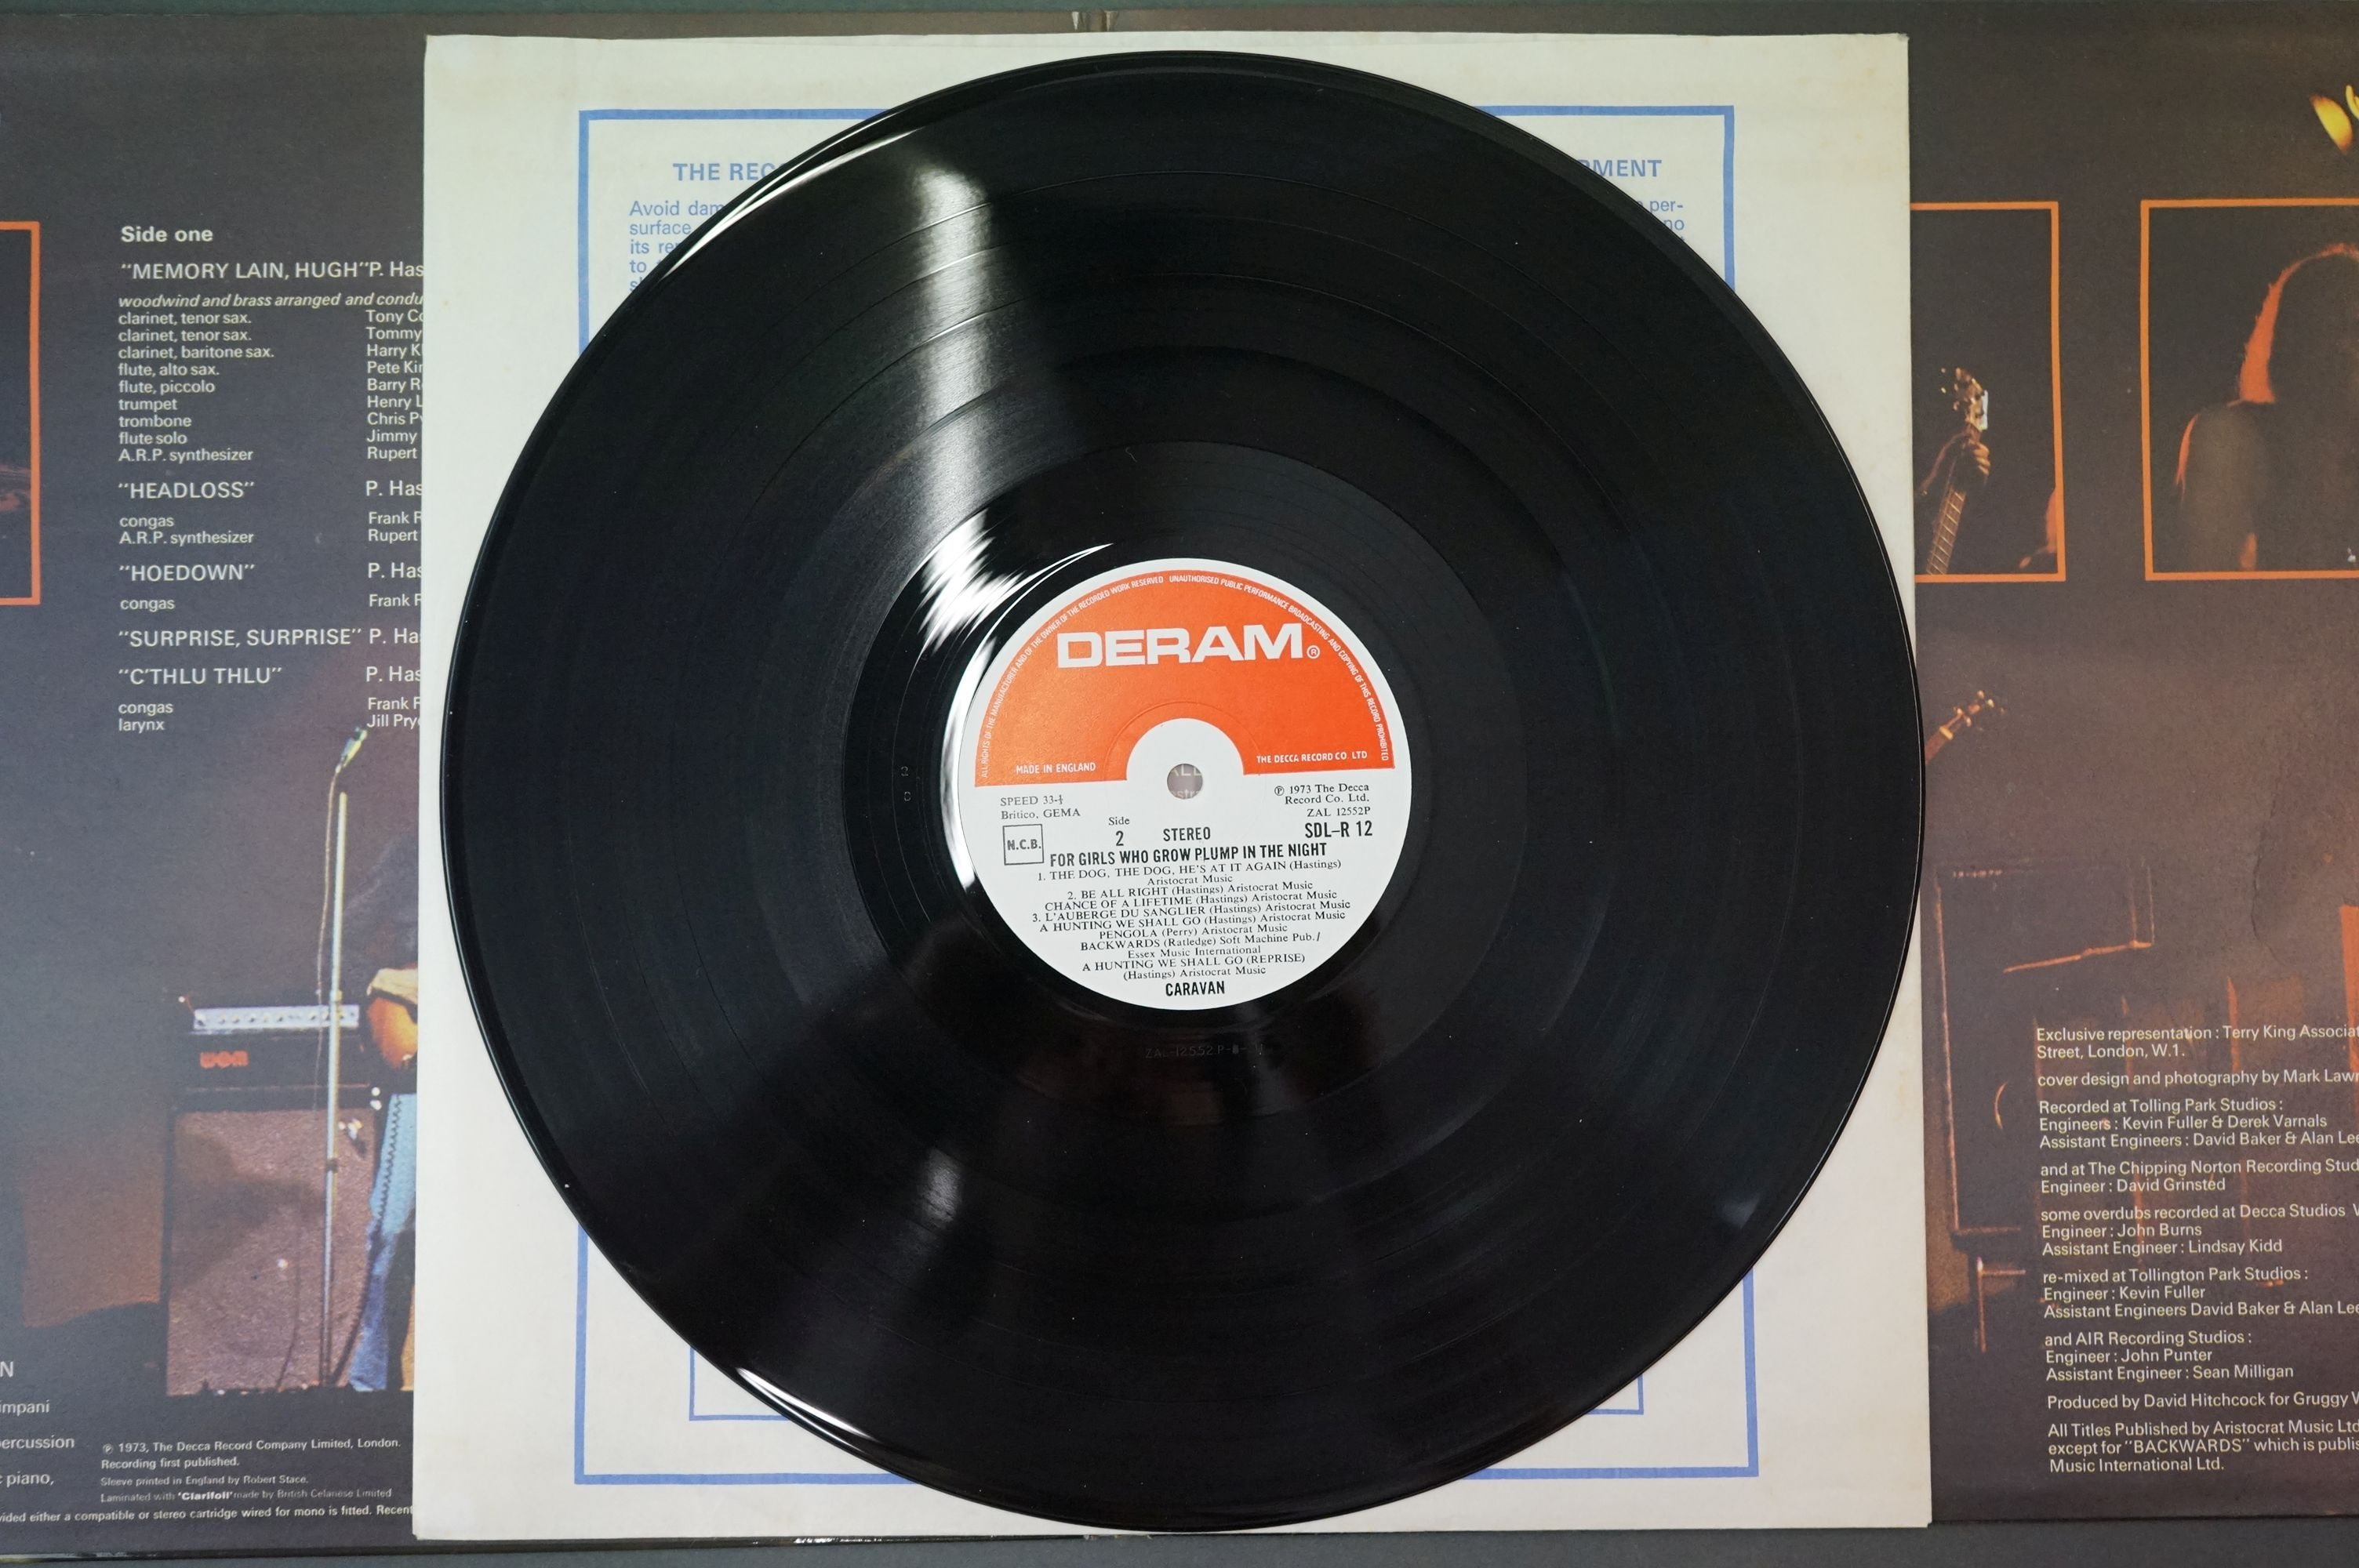 Vinyl - Caravan, For Girls Who Grow Plump in the Night LP on Deram SDLR12 red/white label, - Image 3 of 6